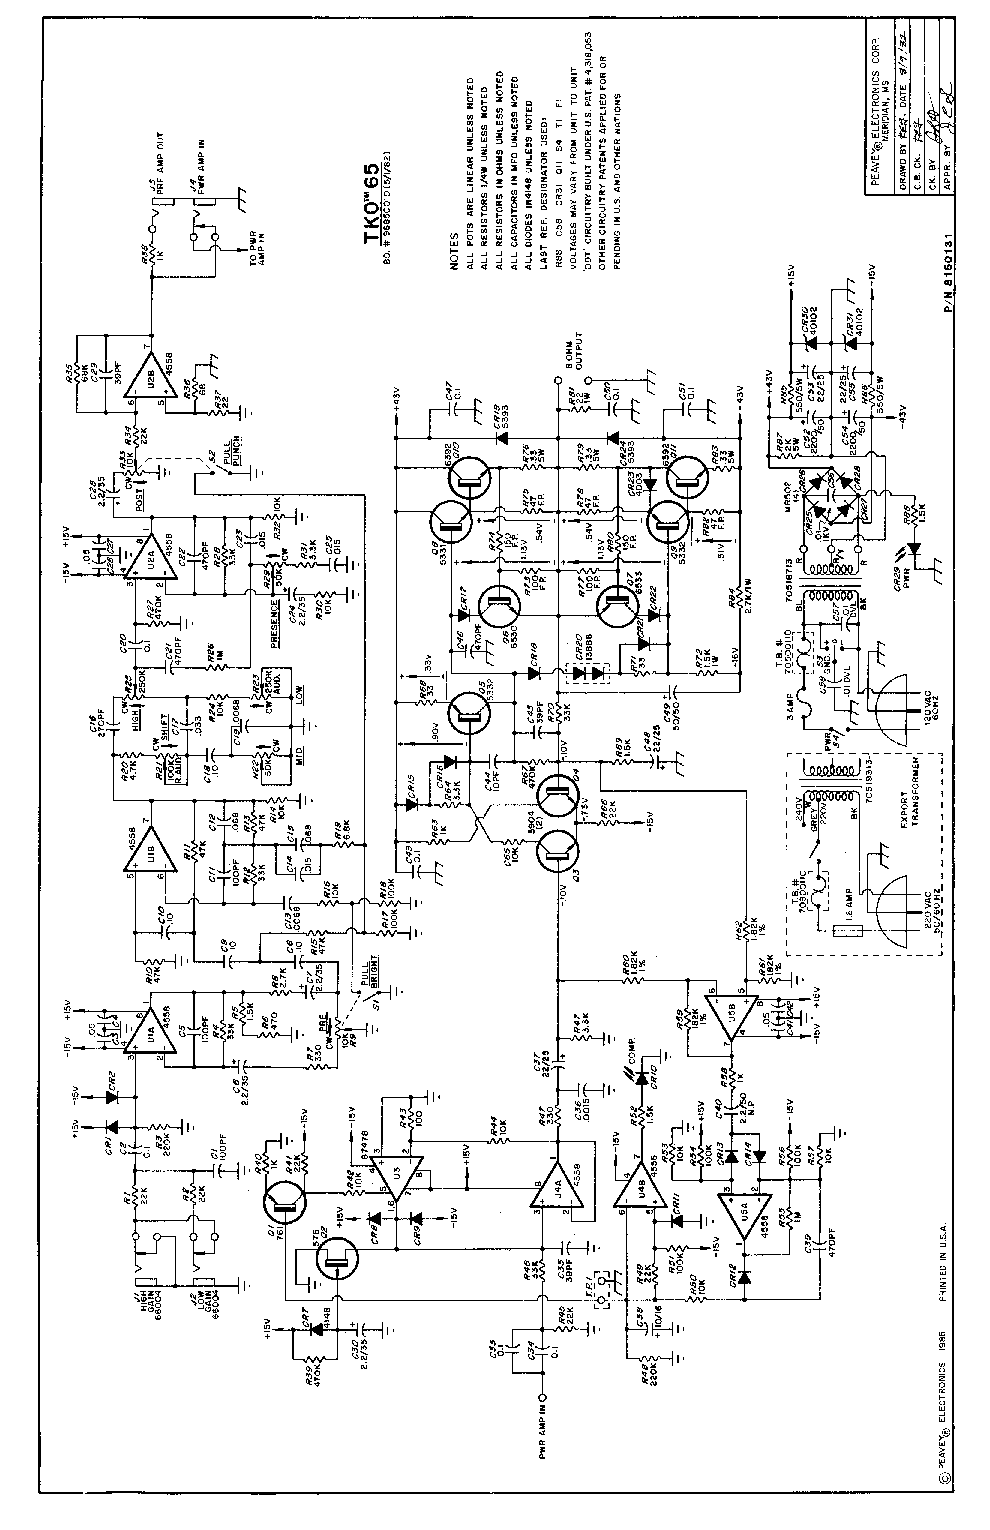 Passive Subwoofer Crossover Circuit Diagram likewise Jbl Marine Stereo Wiring Diagram furthermore Car audio  lifiers as well 216933 Hammond Ao 29 Conversion besides My Crossover. on series speaker crossover wiring diagram